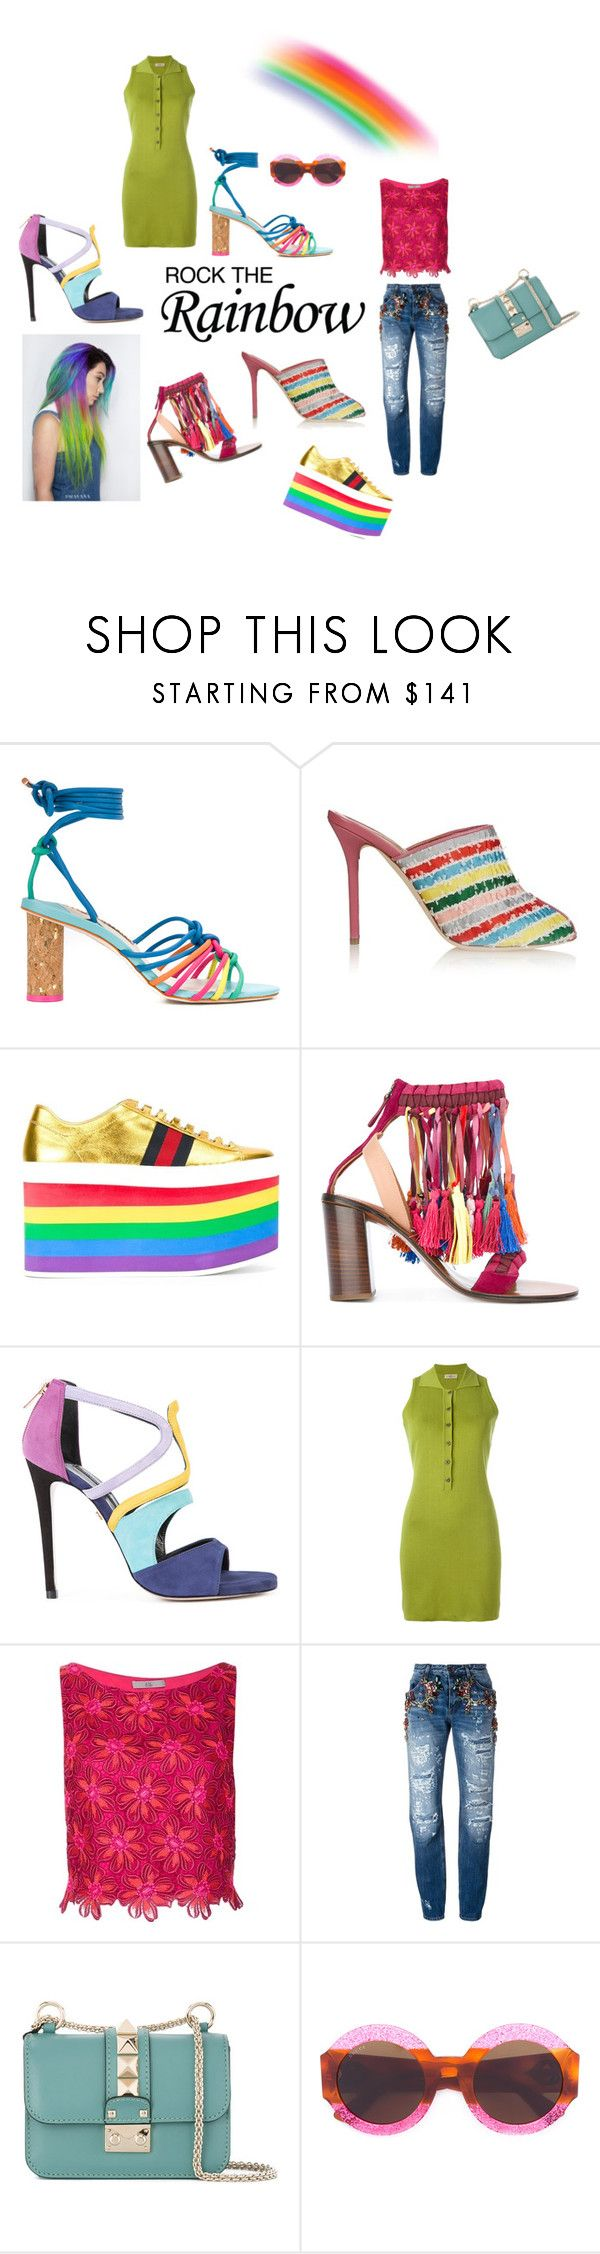 """Rock The Rainbow..**"" by yagna ❤ liked on Polyvore featuring Sophia Webster, Malone Souliers, Gucci, Chloé, Ruthie Davis, Romeo Gigli, ZAC Zac Posen, Dolce&Gabbana, Valentino and vintage"